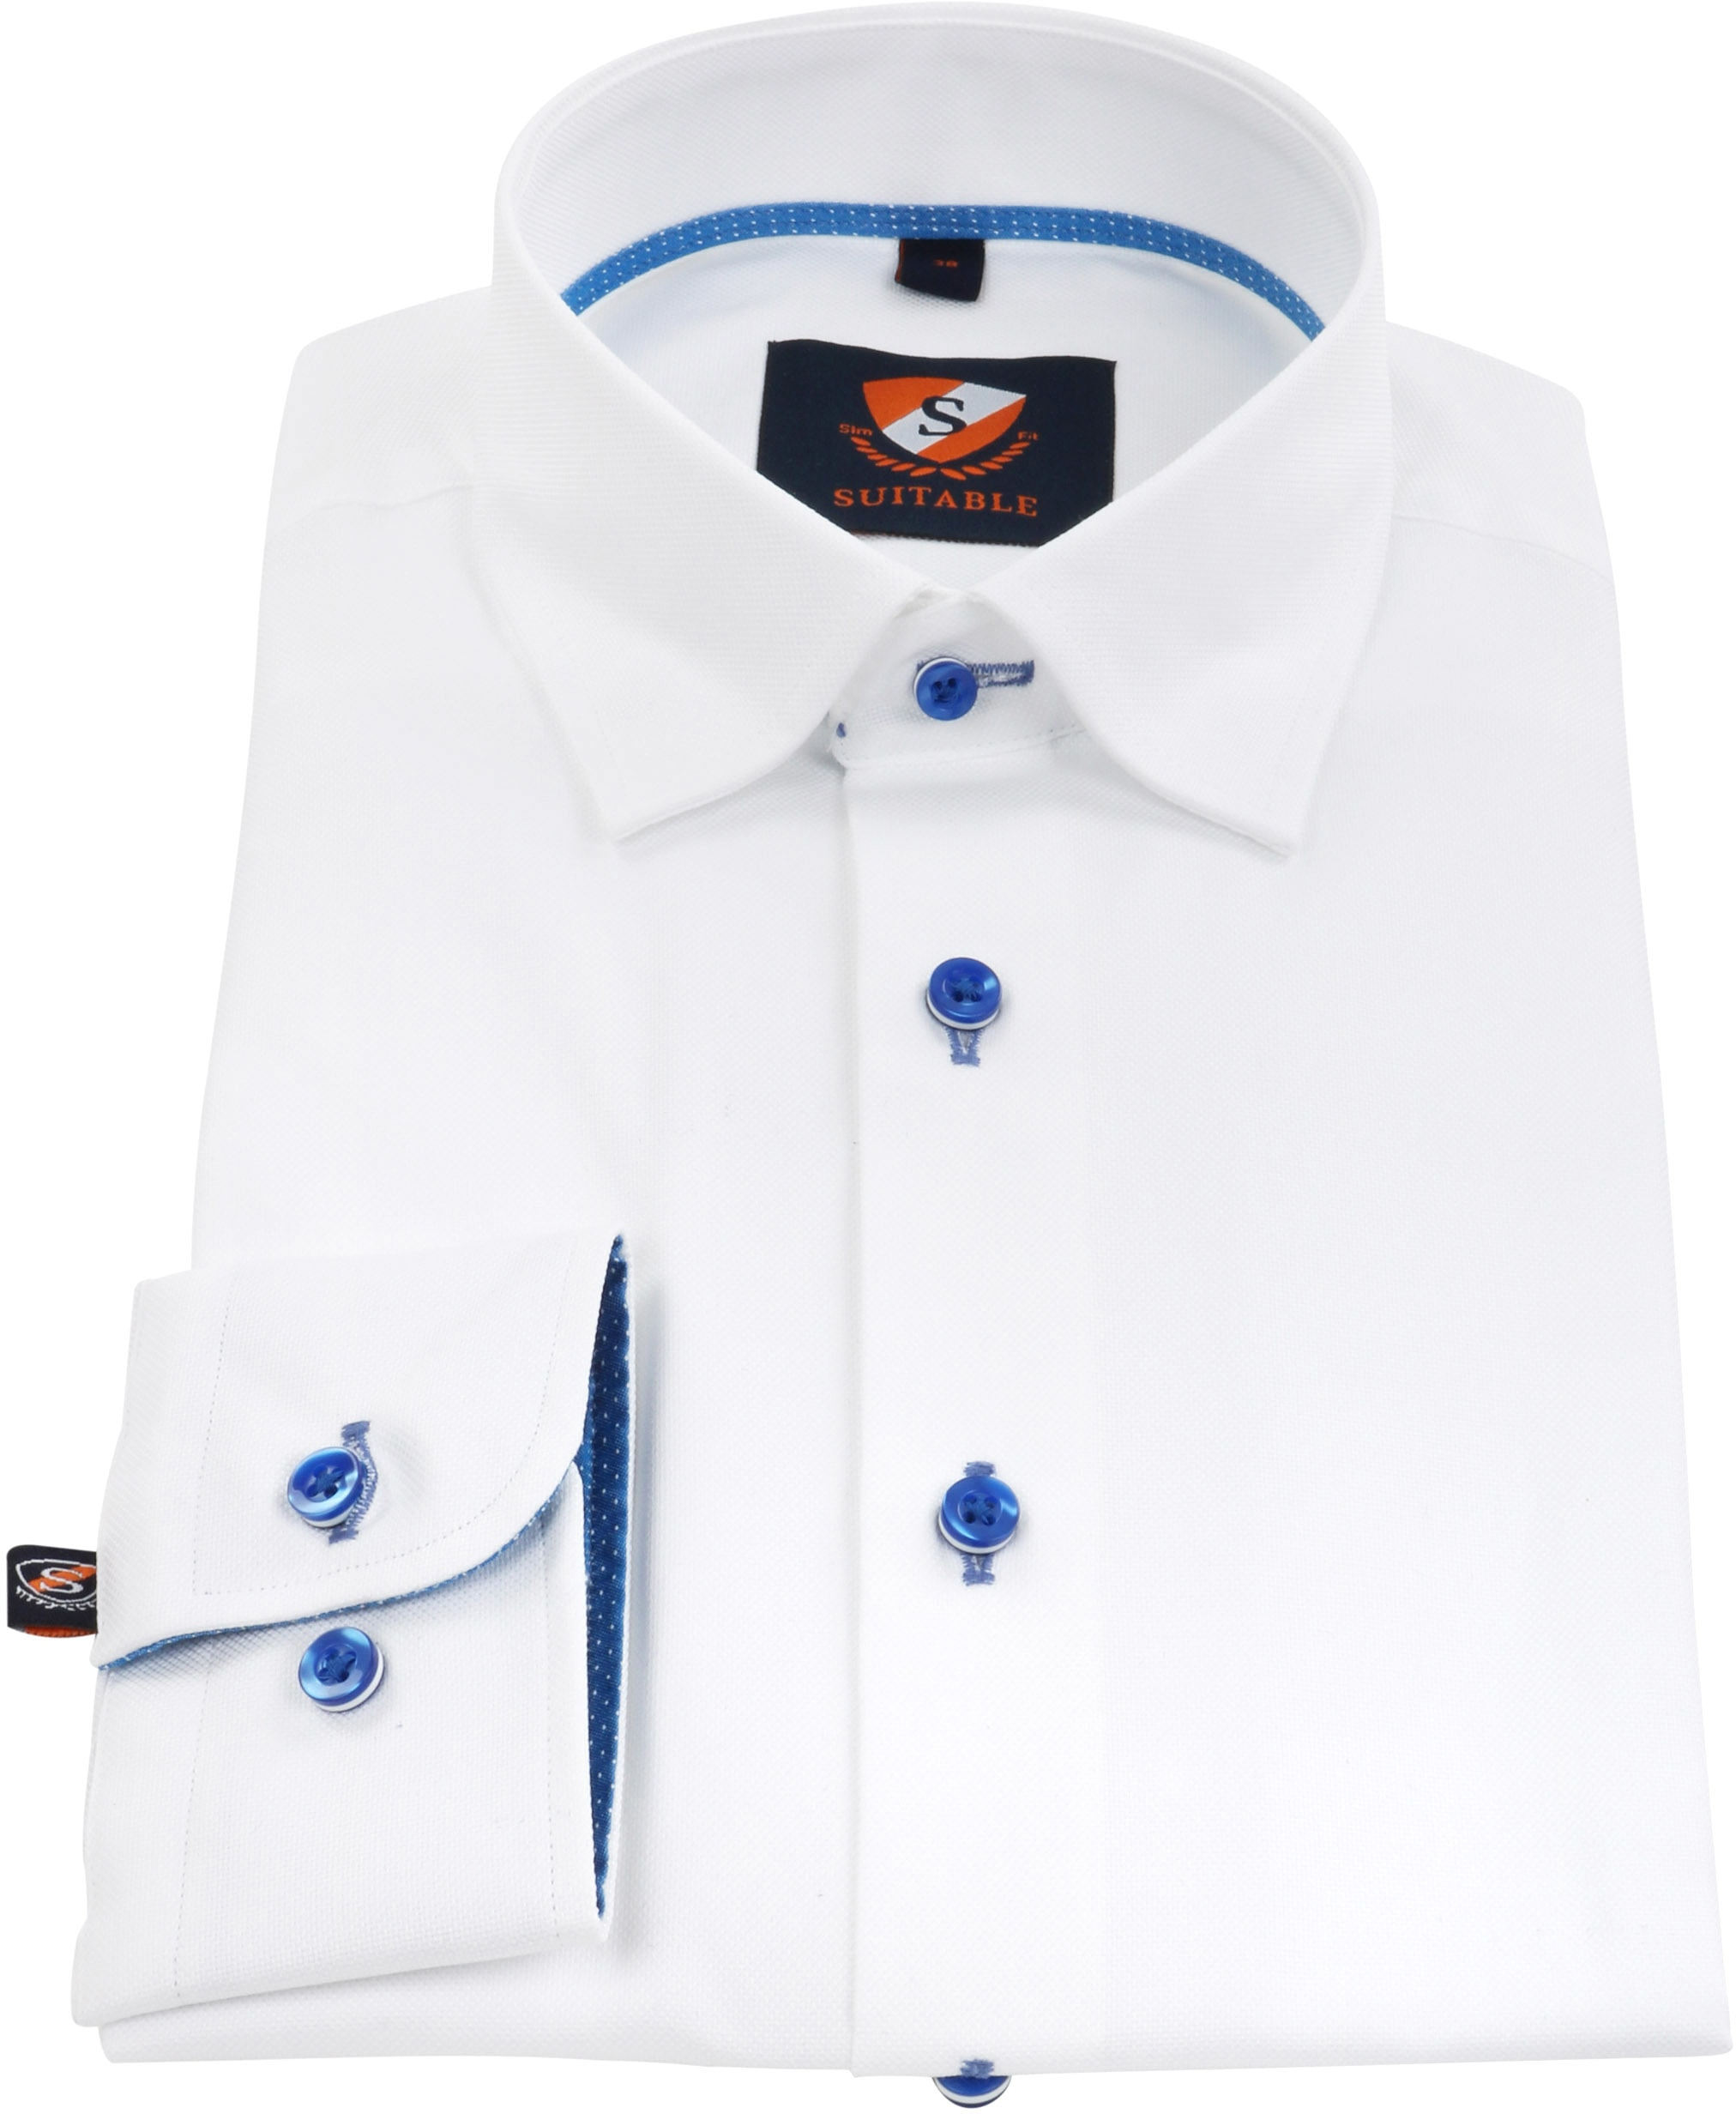 Suitable Shirt Oxford White SF foto 2